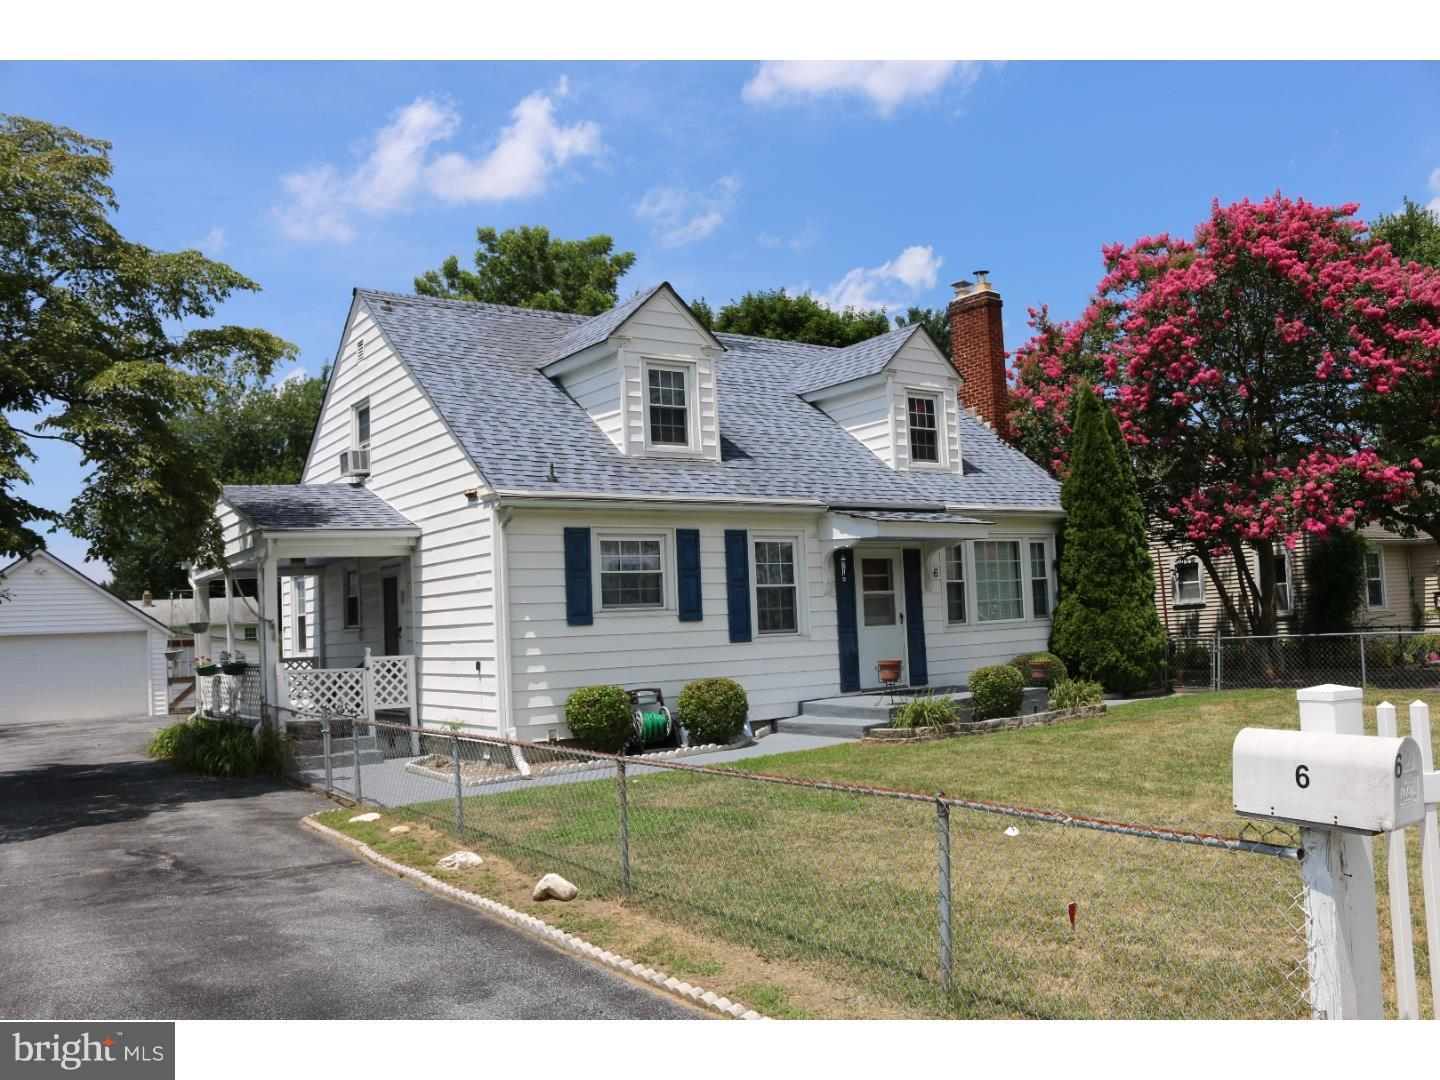 Single Family Home for Rent at 6 WESLEY Street Camden, Delaware 19934 United States